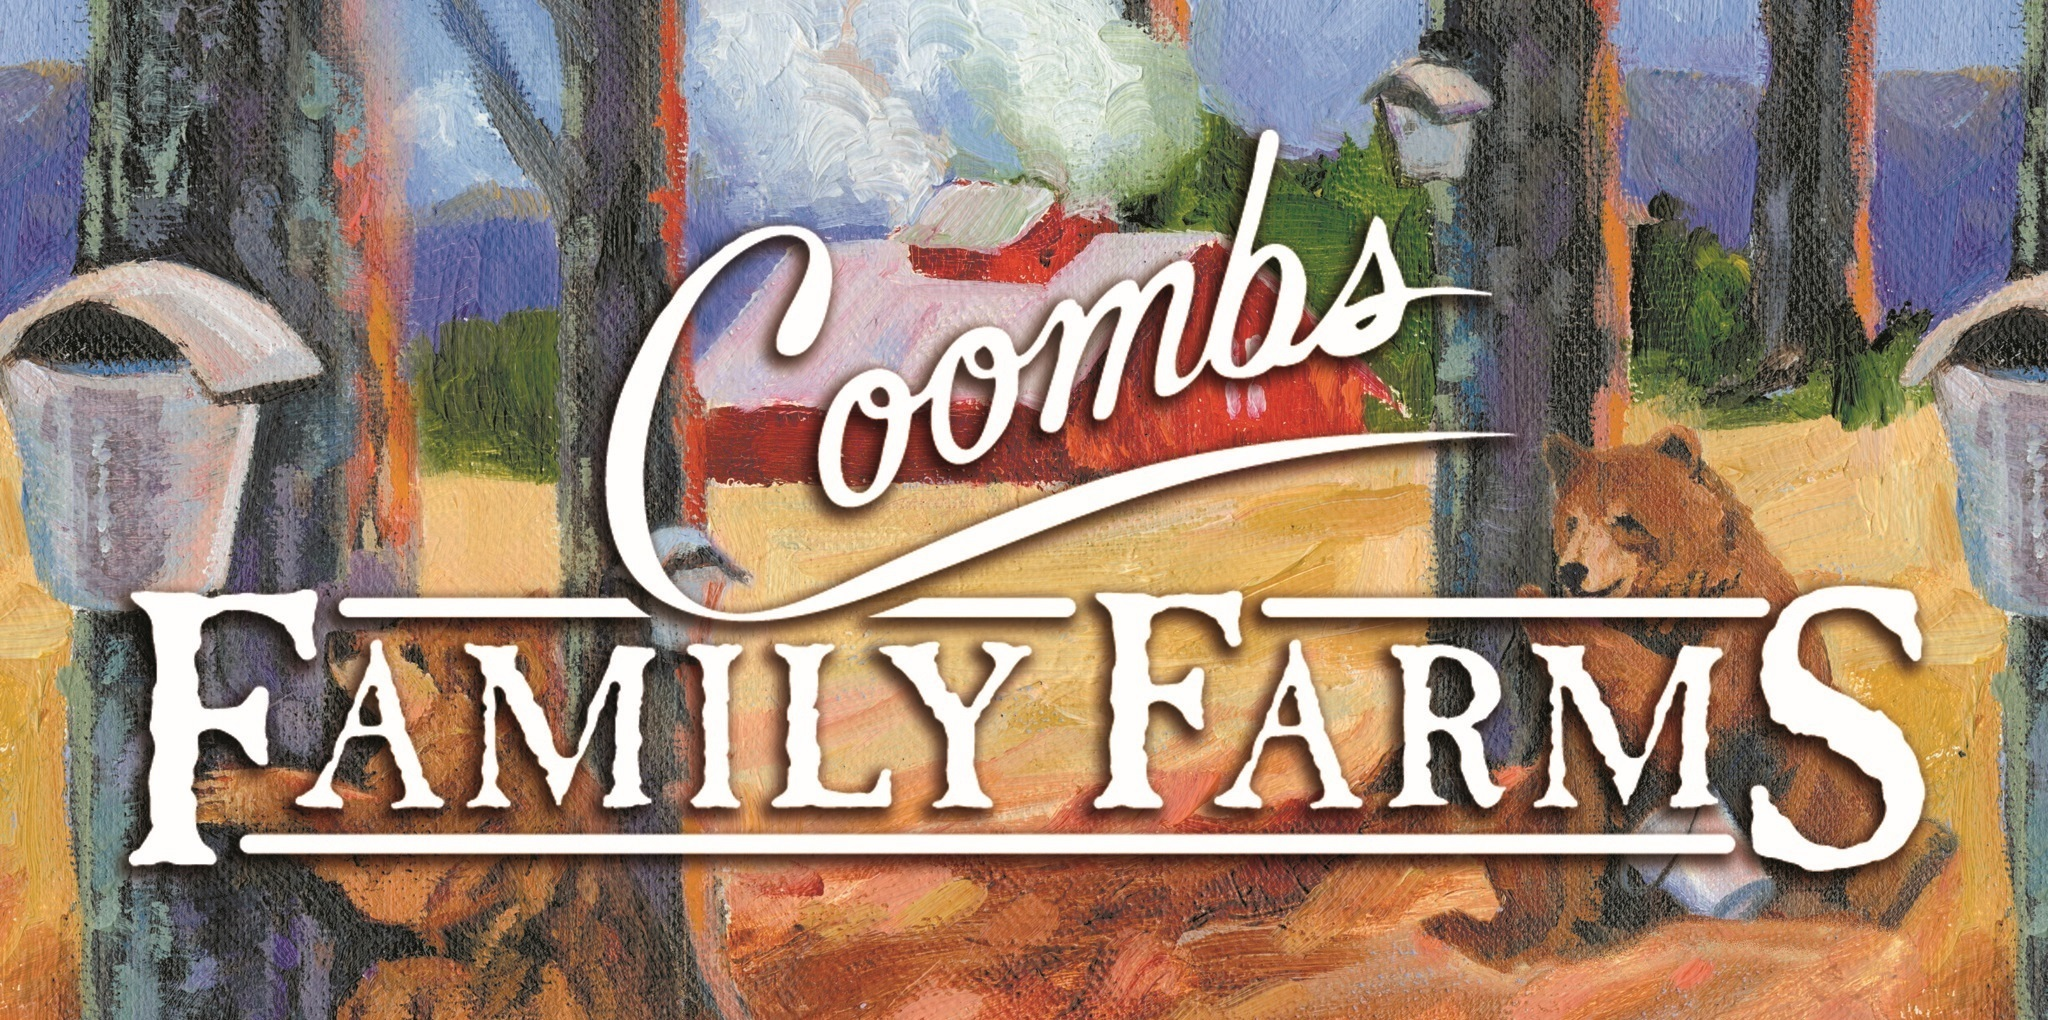 Coombs Family Farm